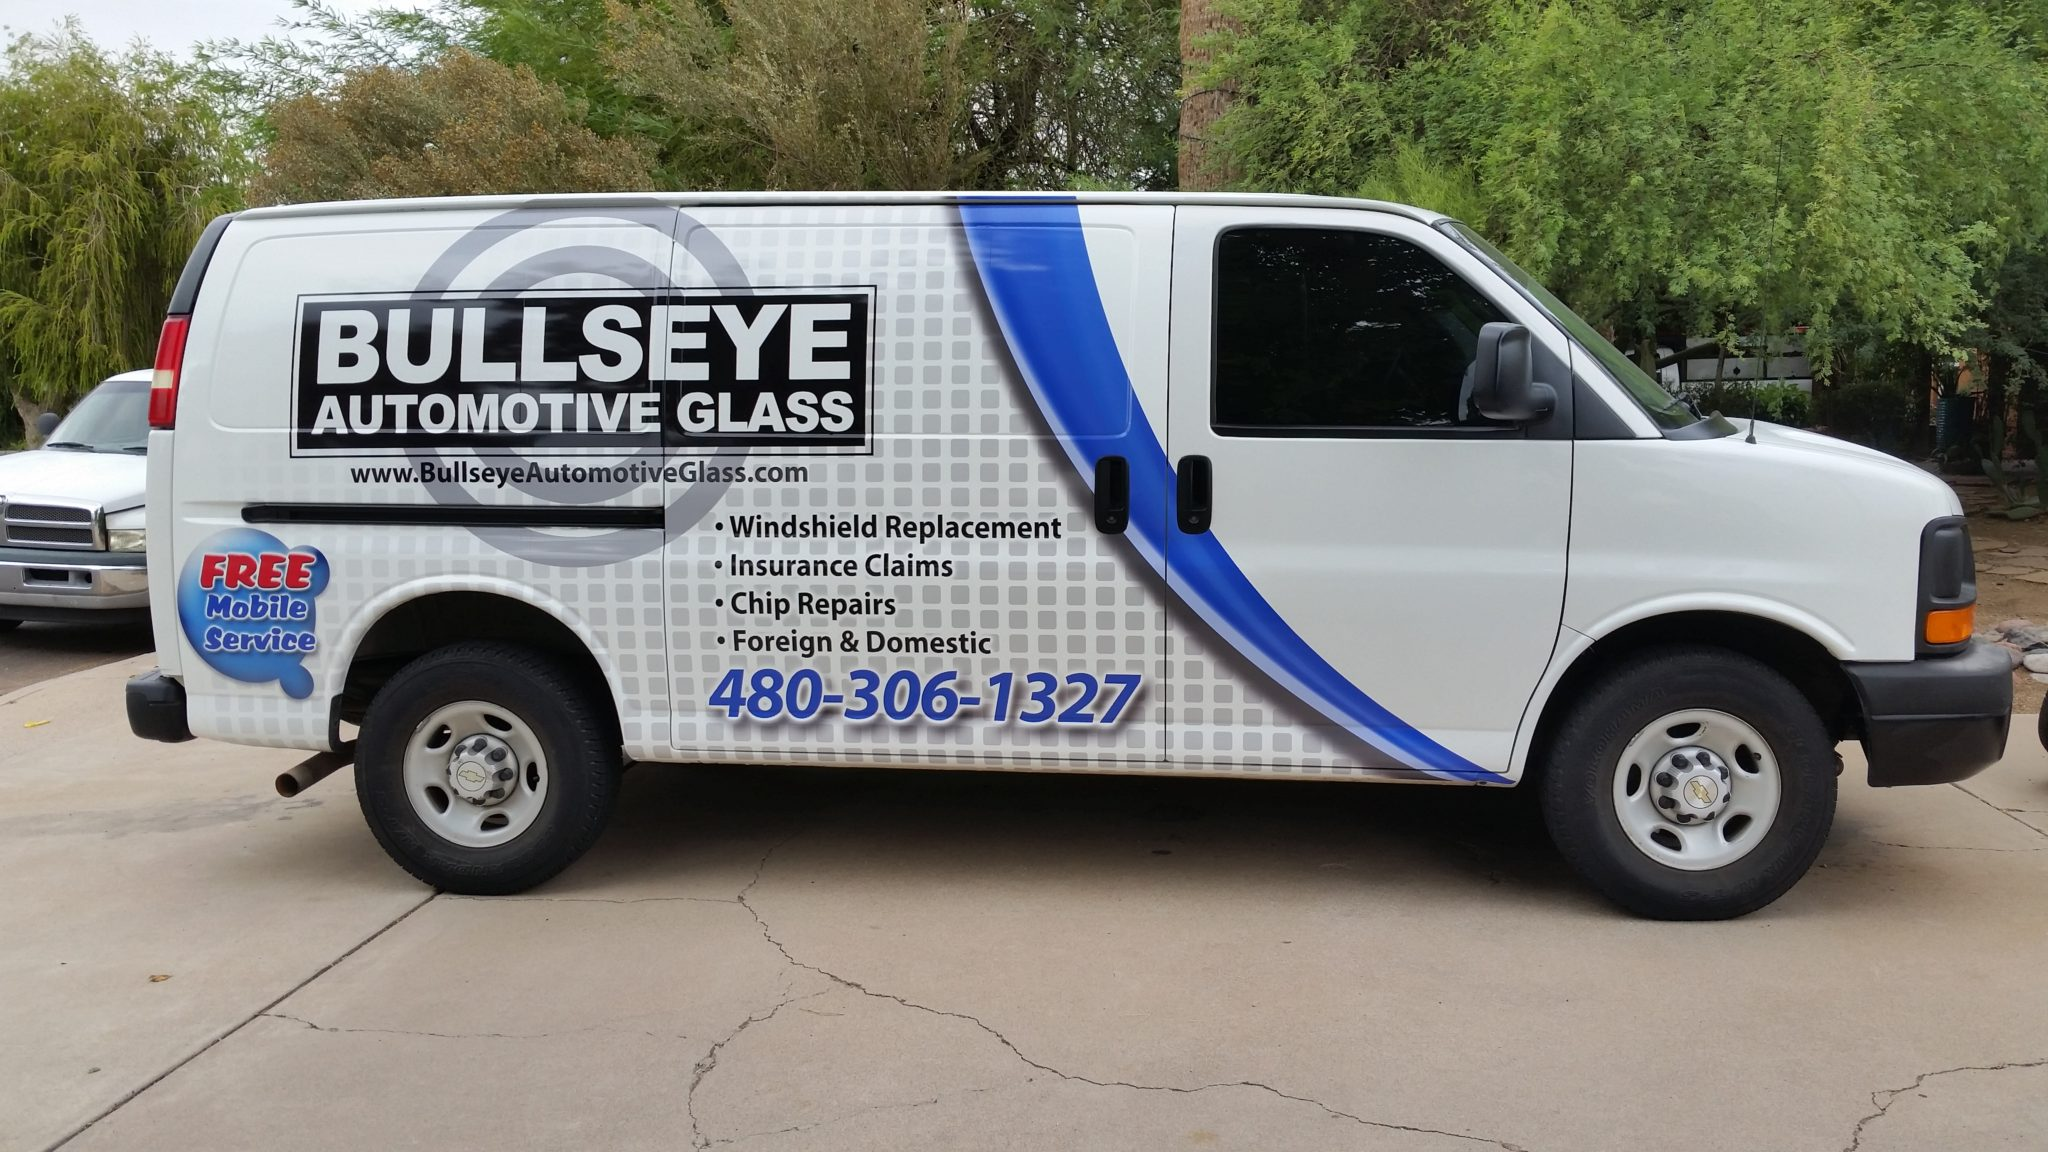 Windshield Repair Quote How To Get An Auto Glass Replacement And Windshield Repair Quote